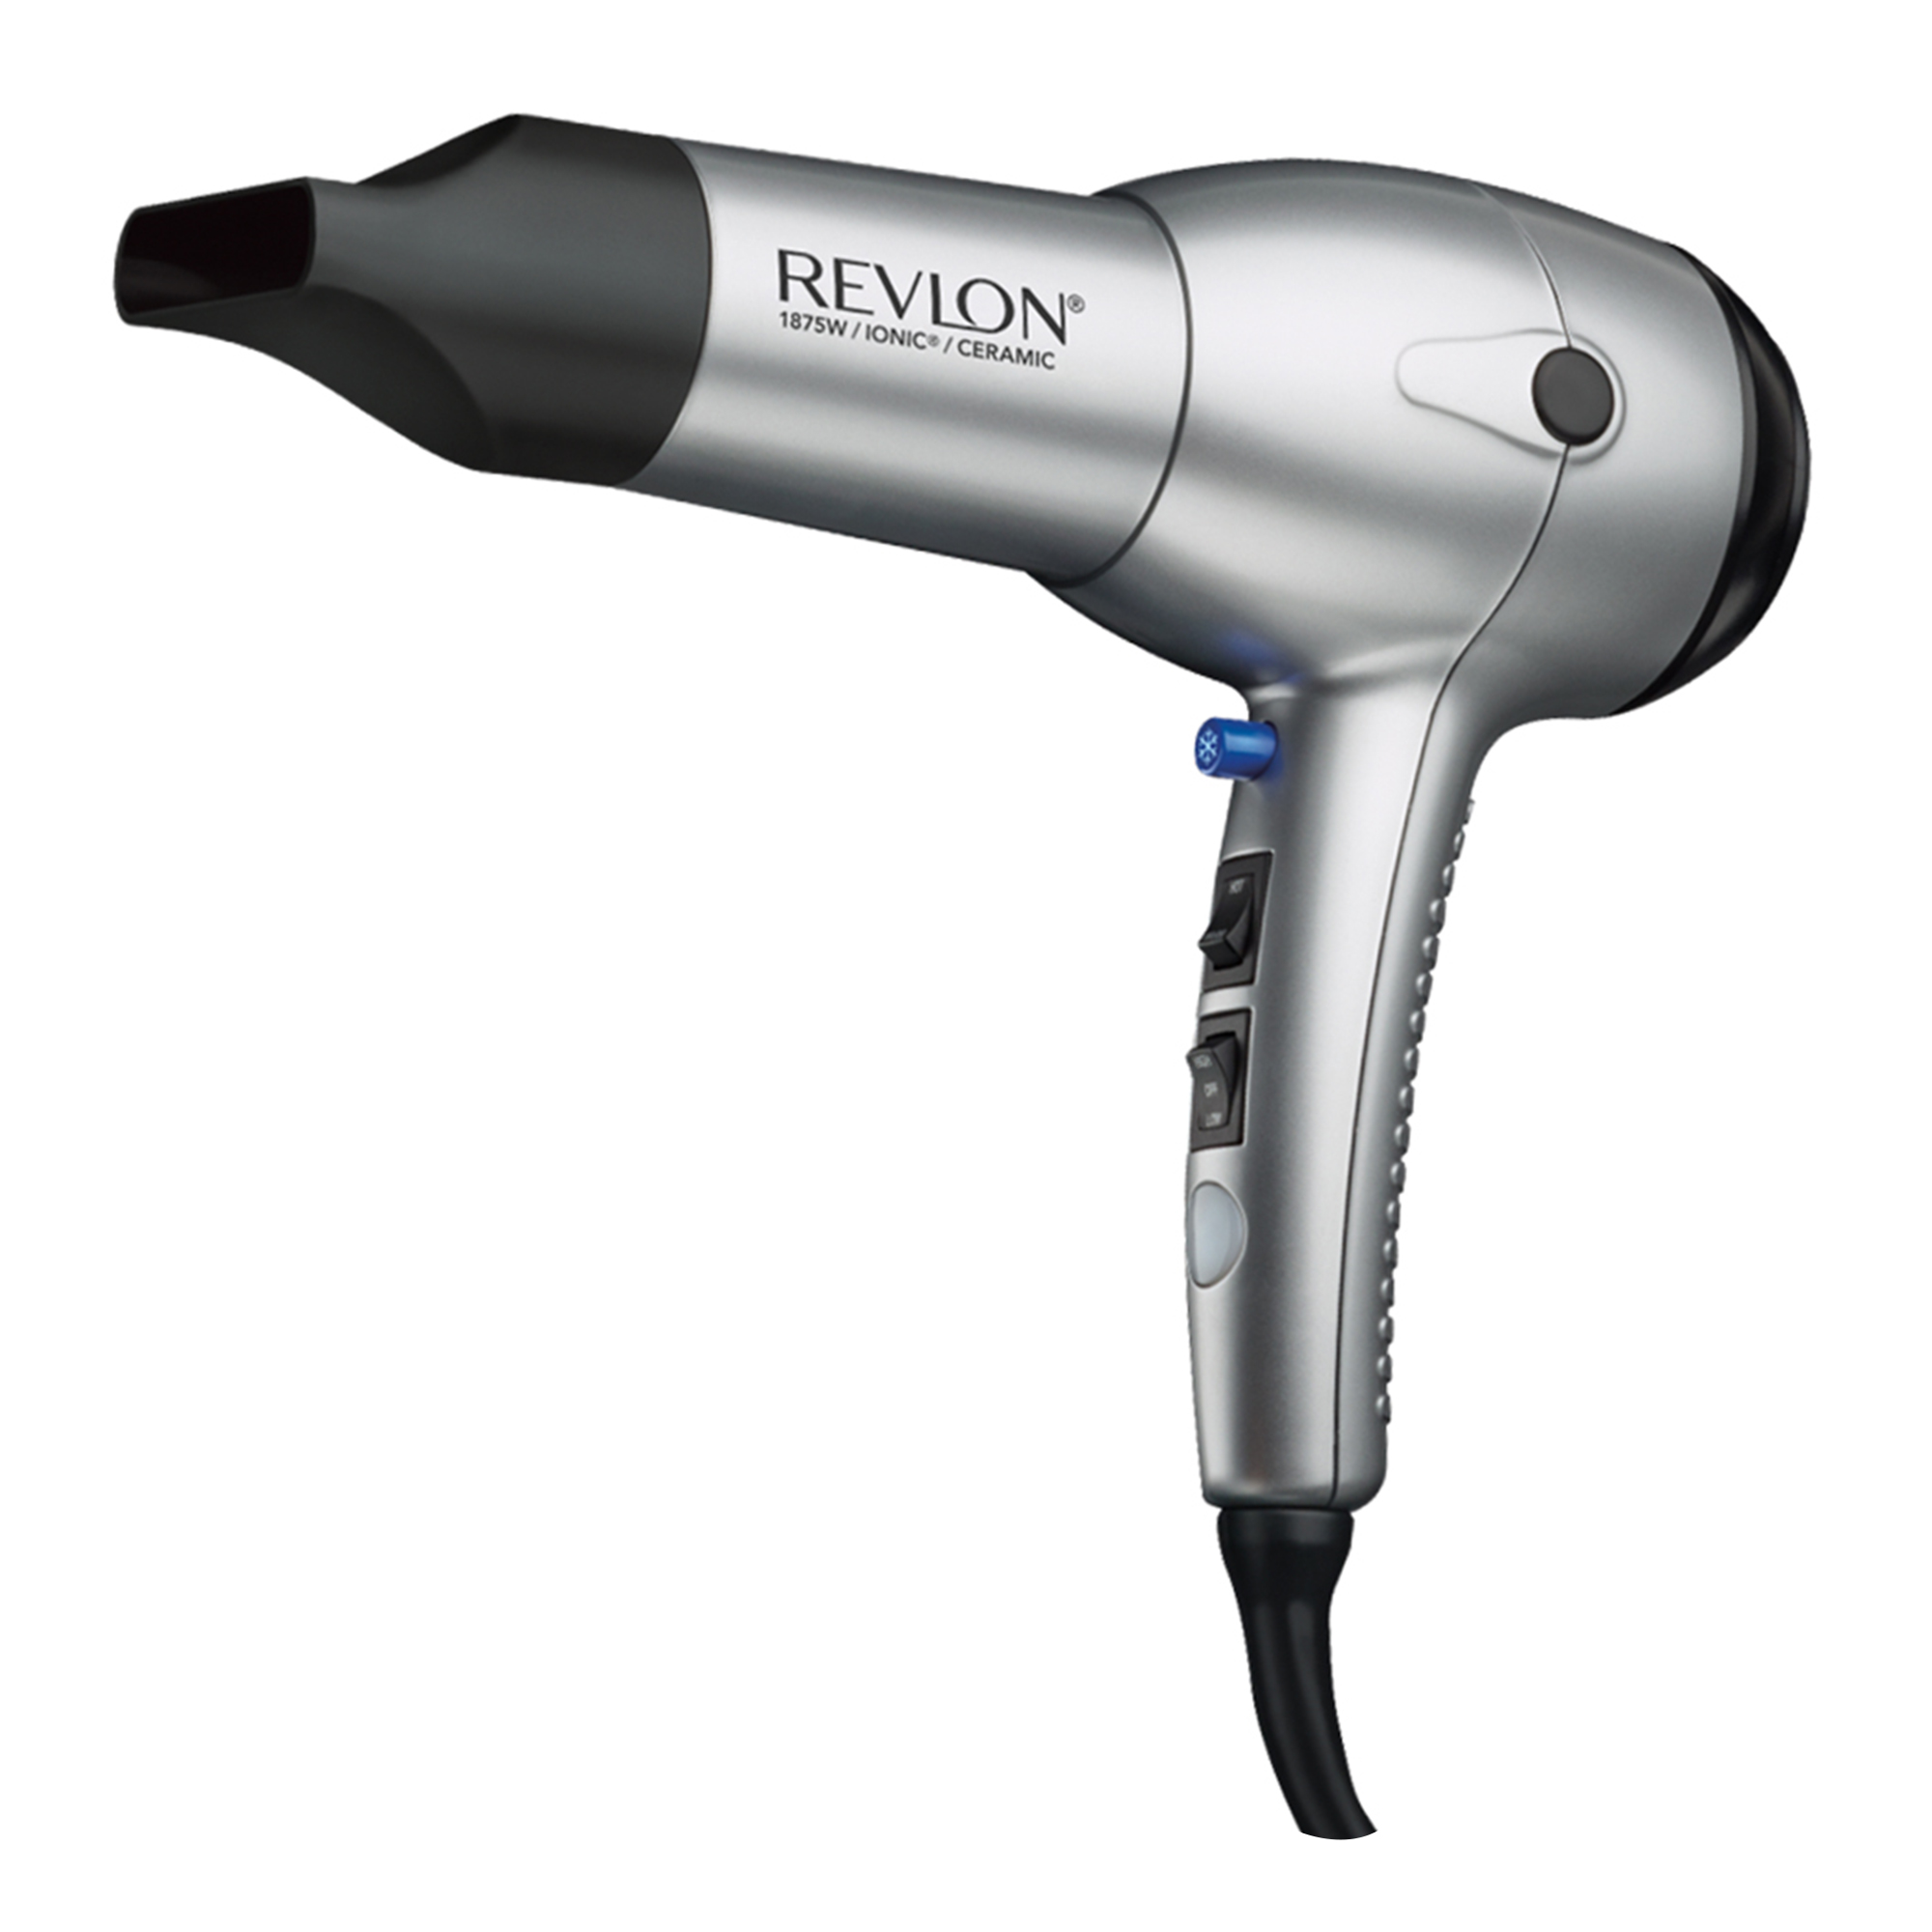 Revlon 1875W Lightweight Hair Dryer